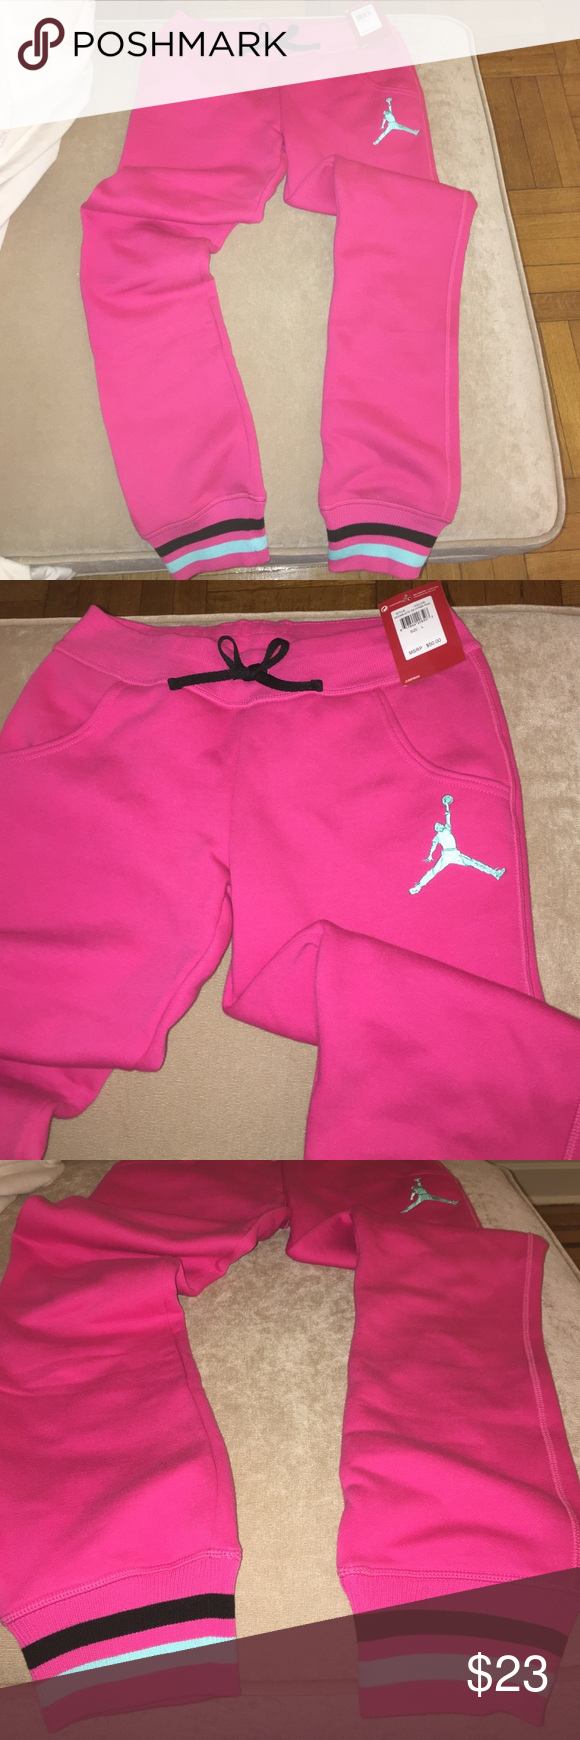 c46f2d613067 Pink Jordan sweatpants Brand new with the tags on! Pink Jordan sweatpants  with teal jumpman. Cotton material. Jordan Pants Track Pants   Joggers